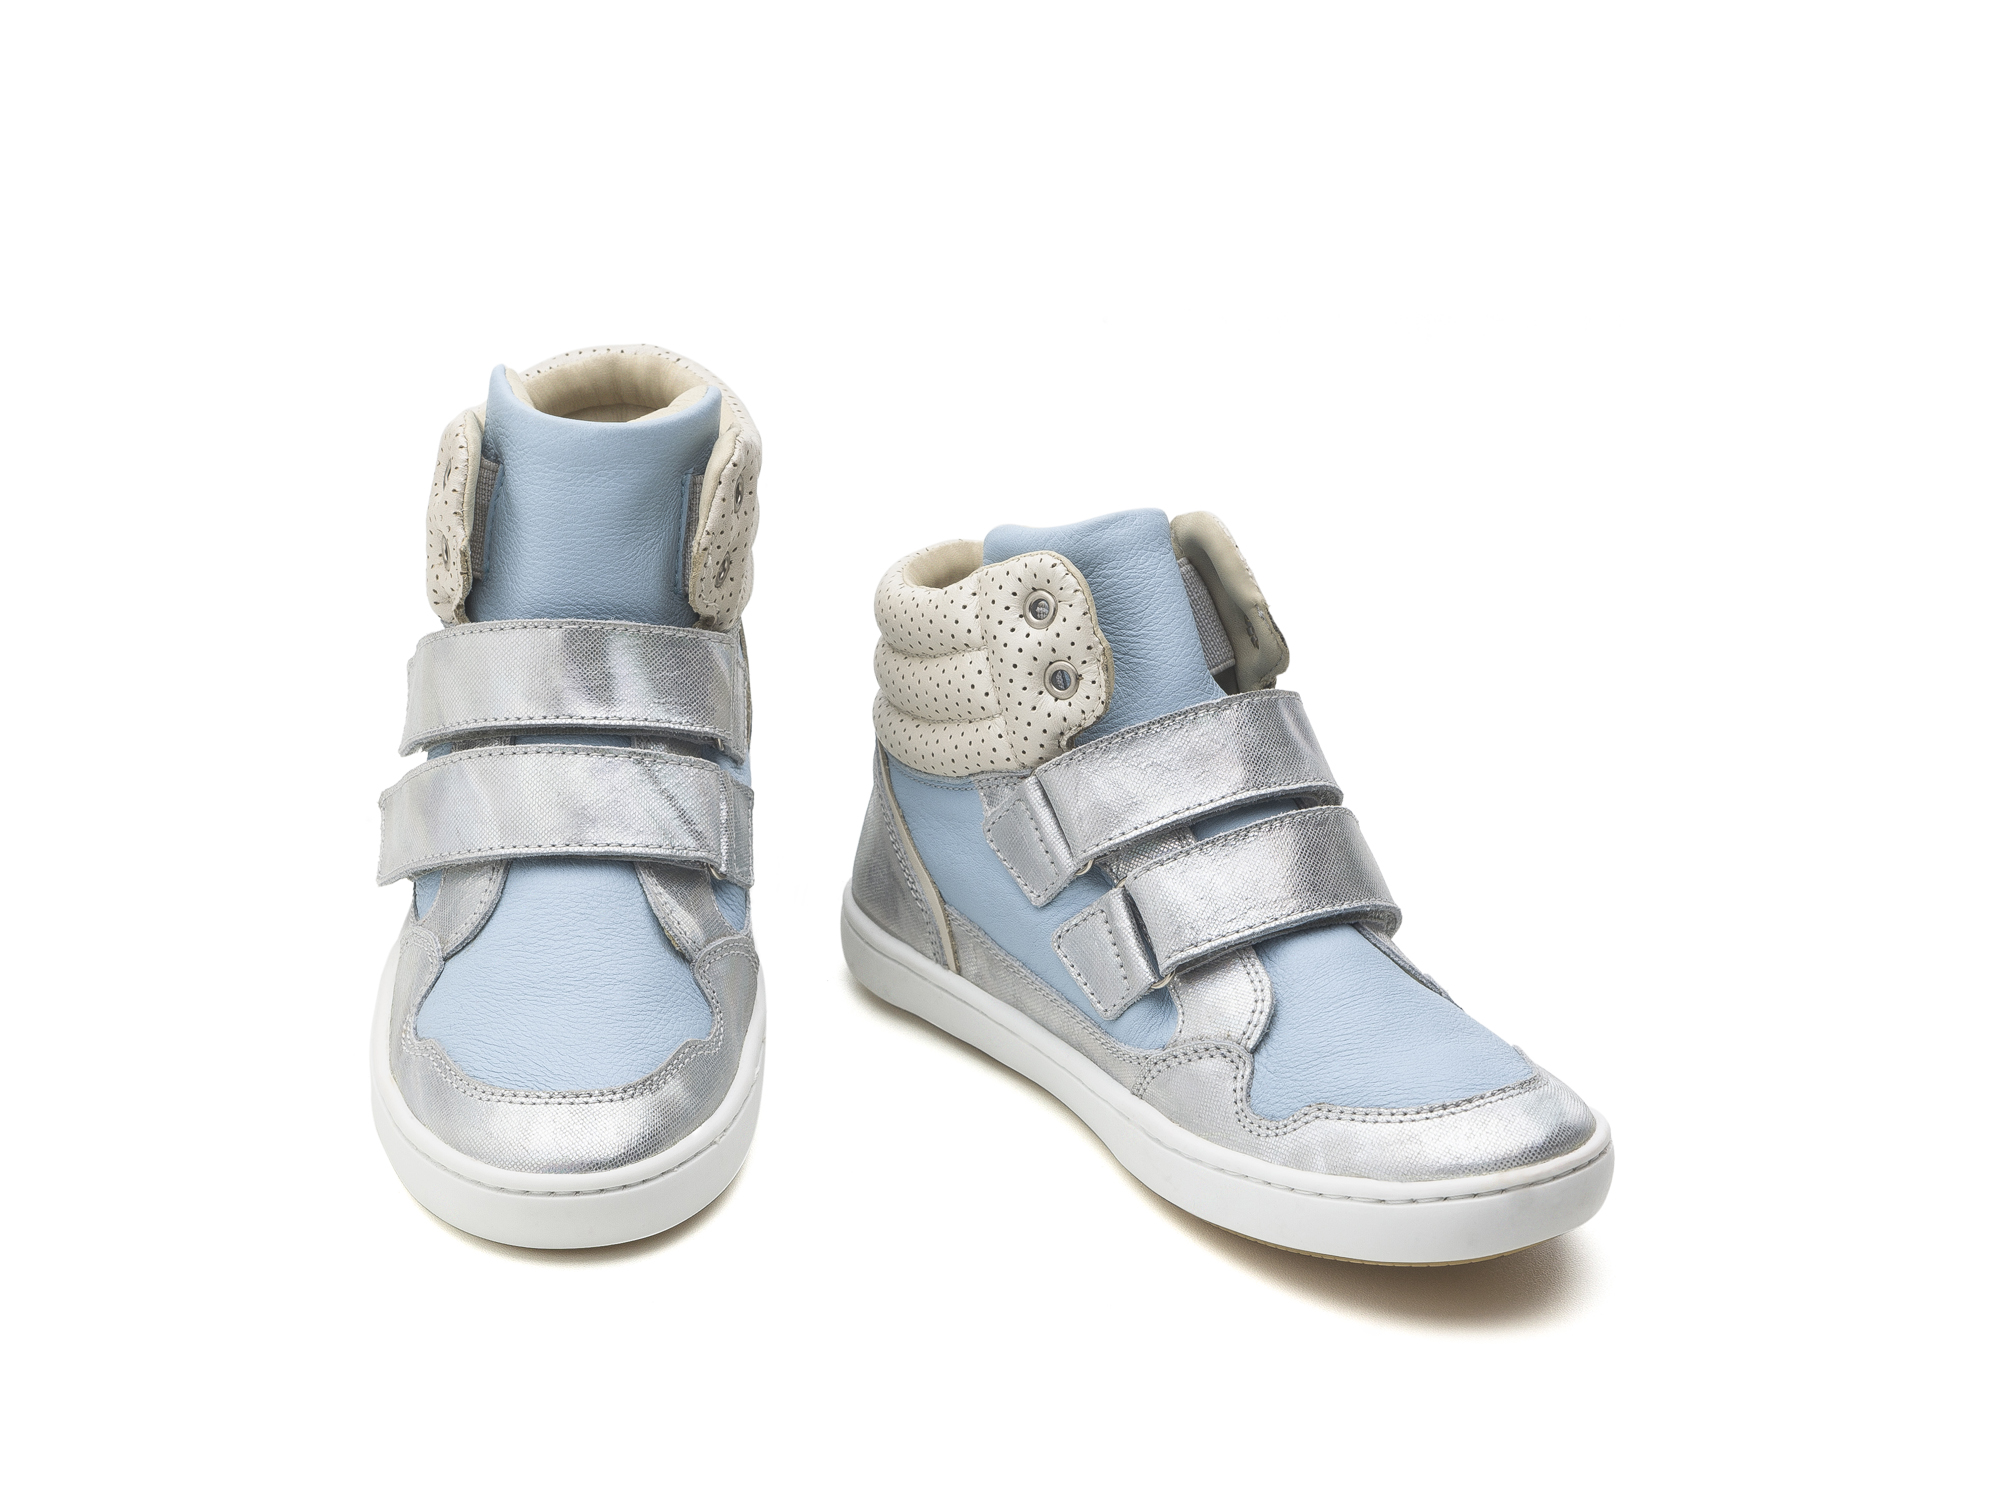 Bota Edge Sea Sparkle/ Baby Blue Junior 4 à 8 anos - 2